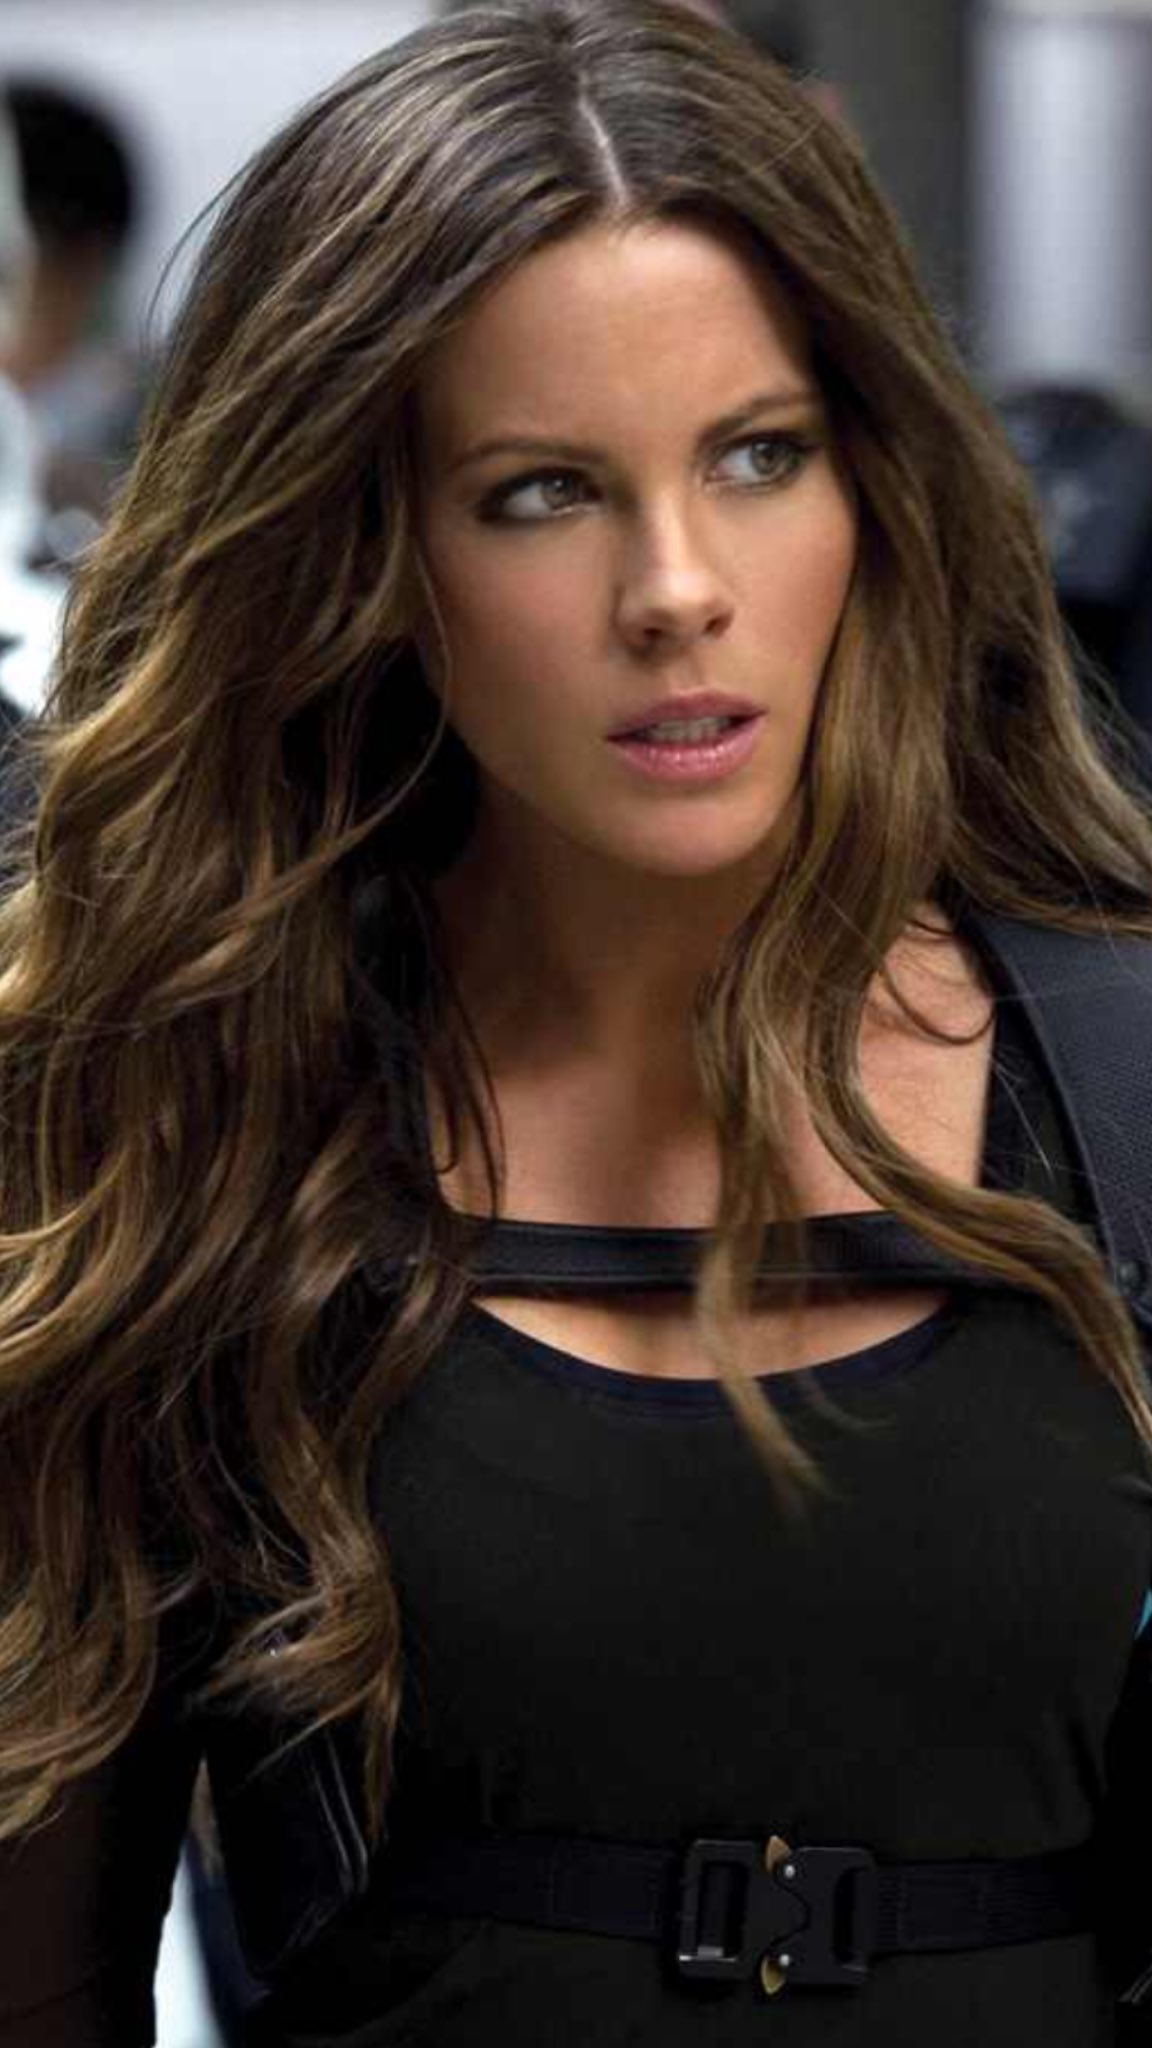 Appy belated Kate Beckinsale day! https://t.co/h9xUKlj4Db